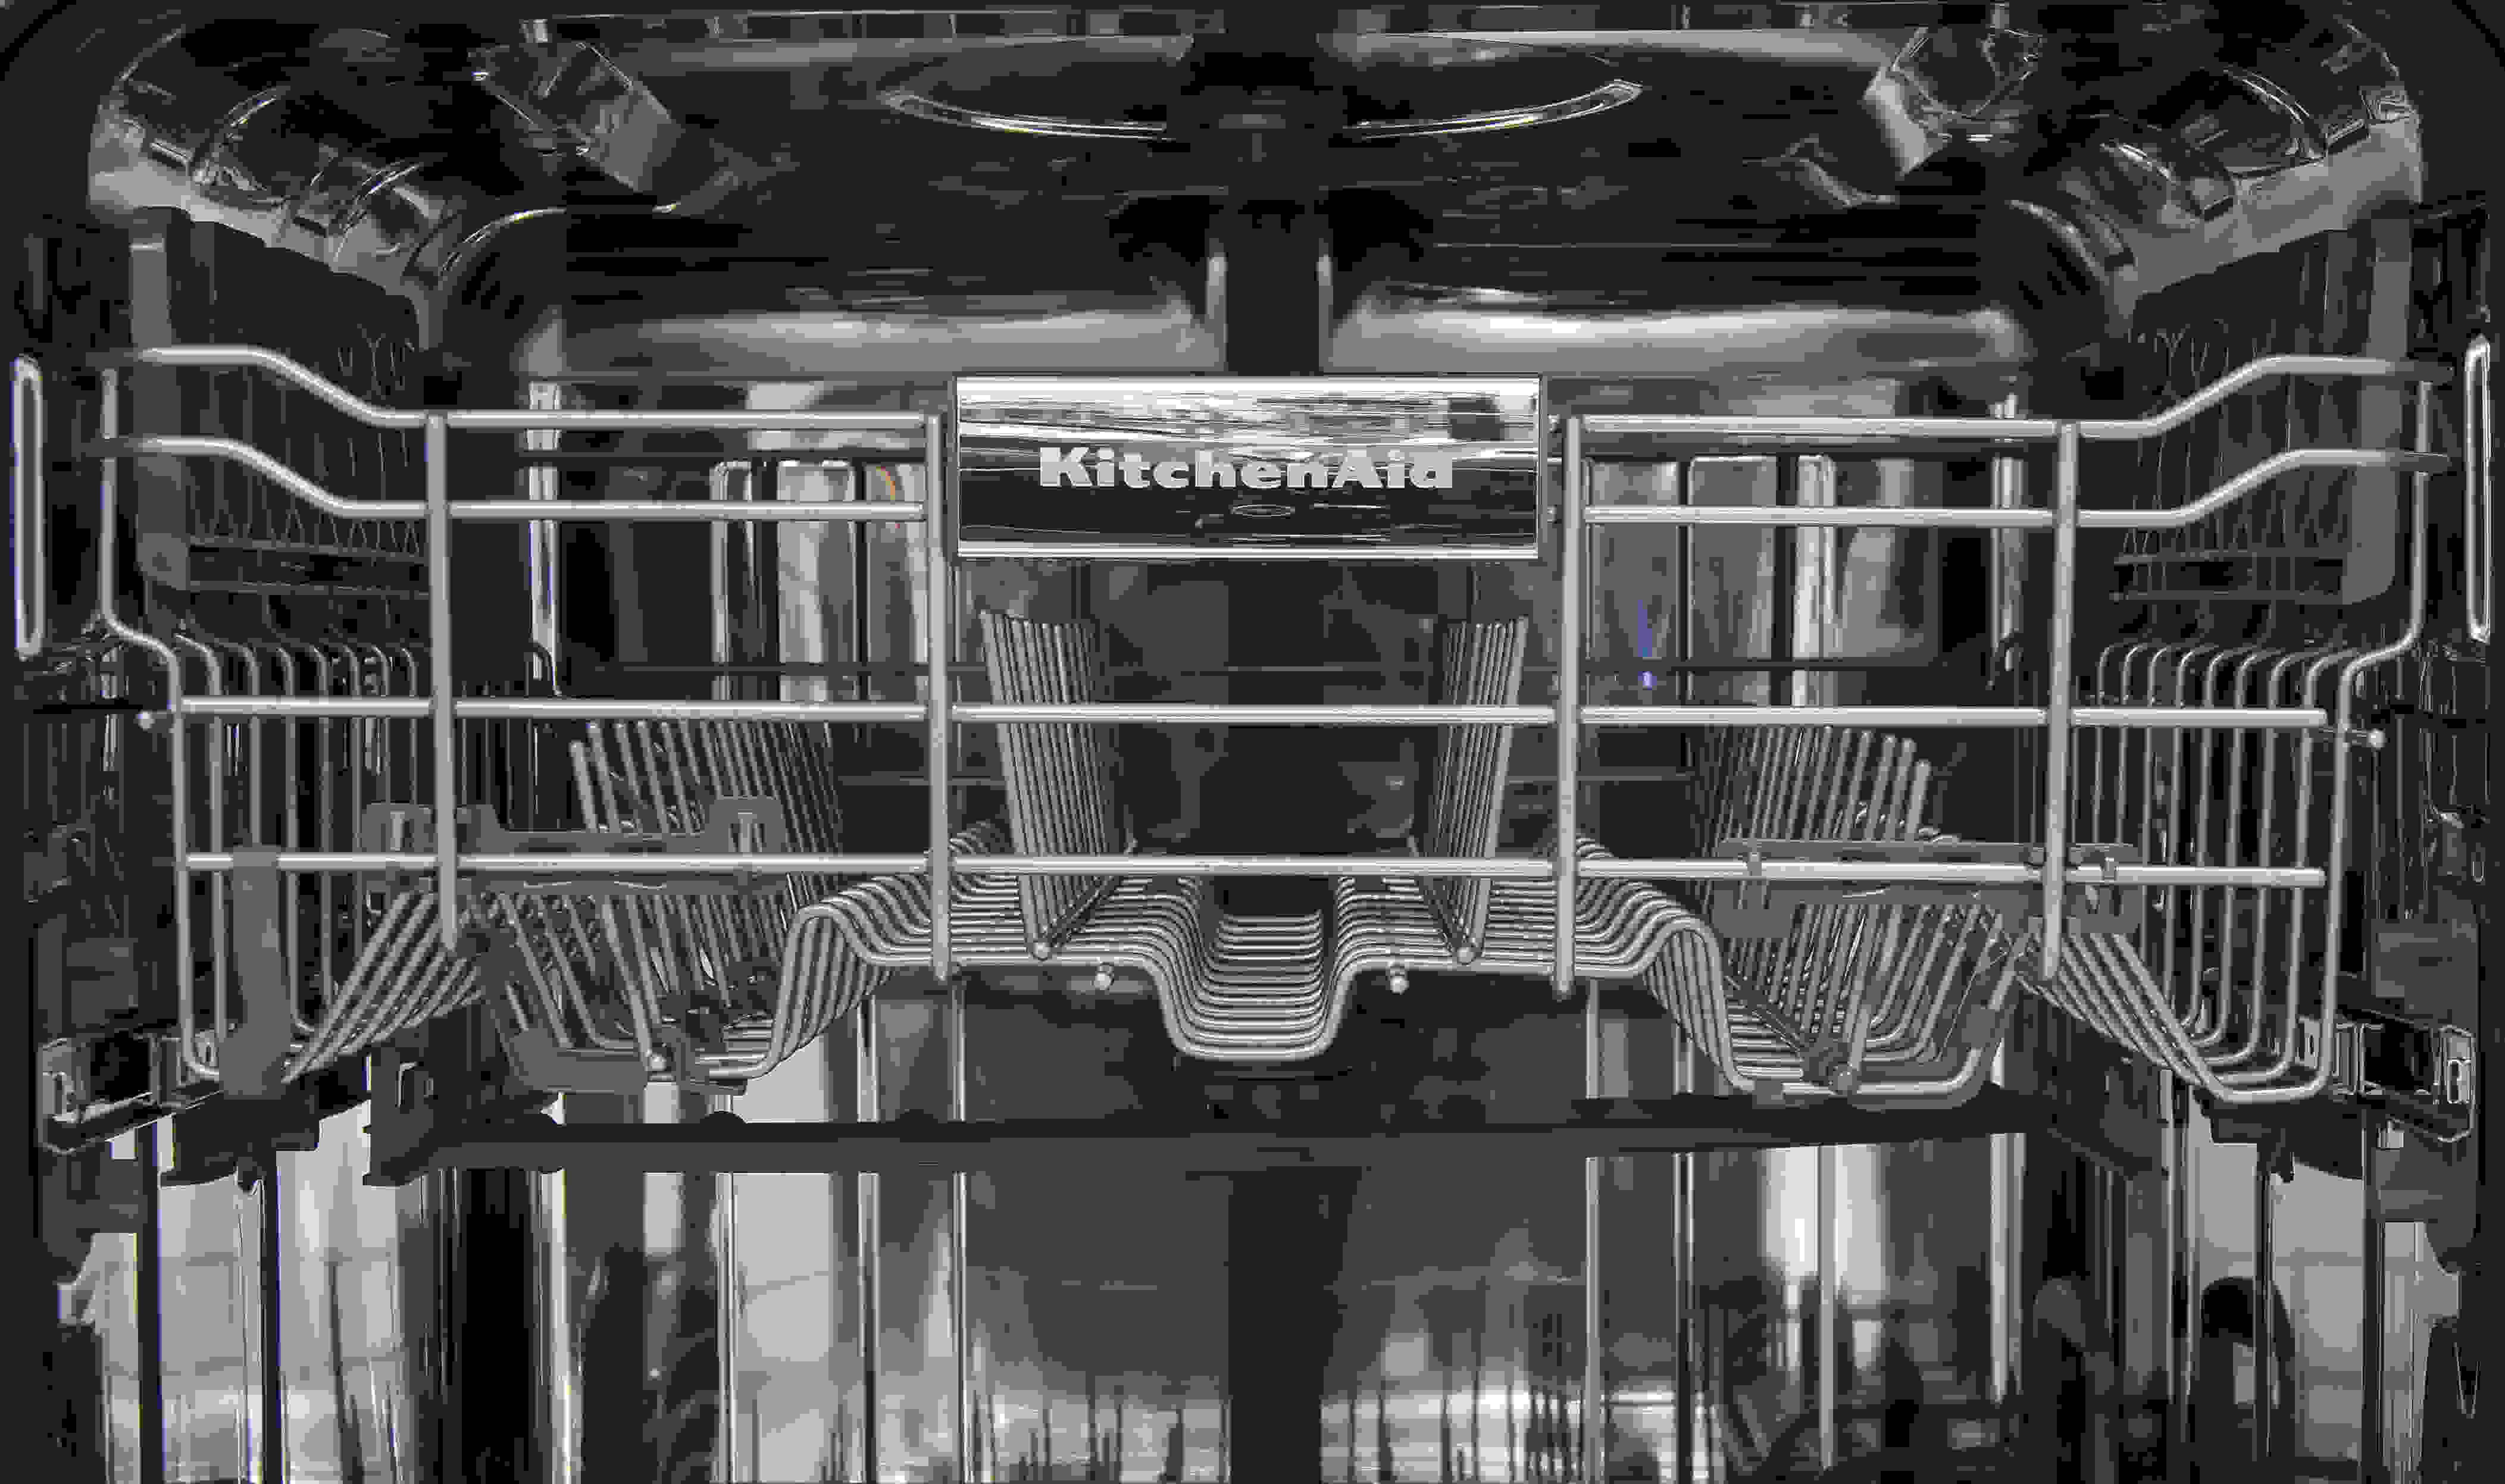 KitchenAid KDTM354DSS top rack closeup